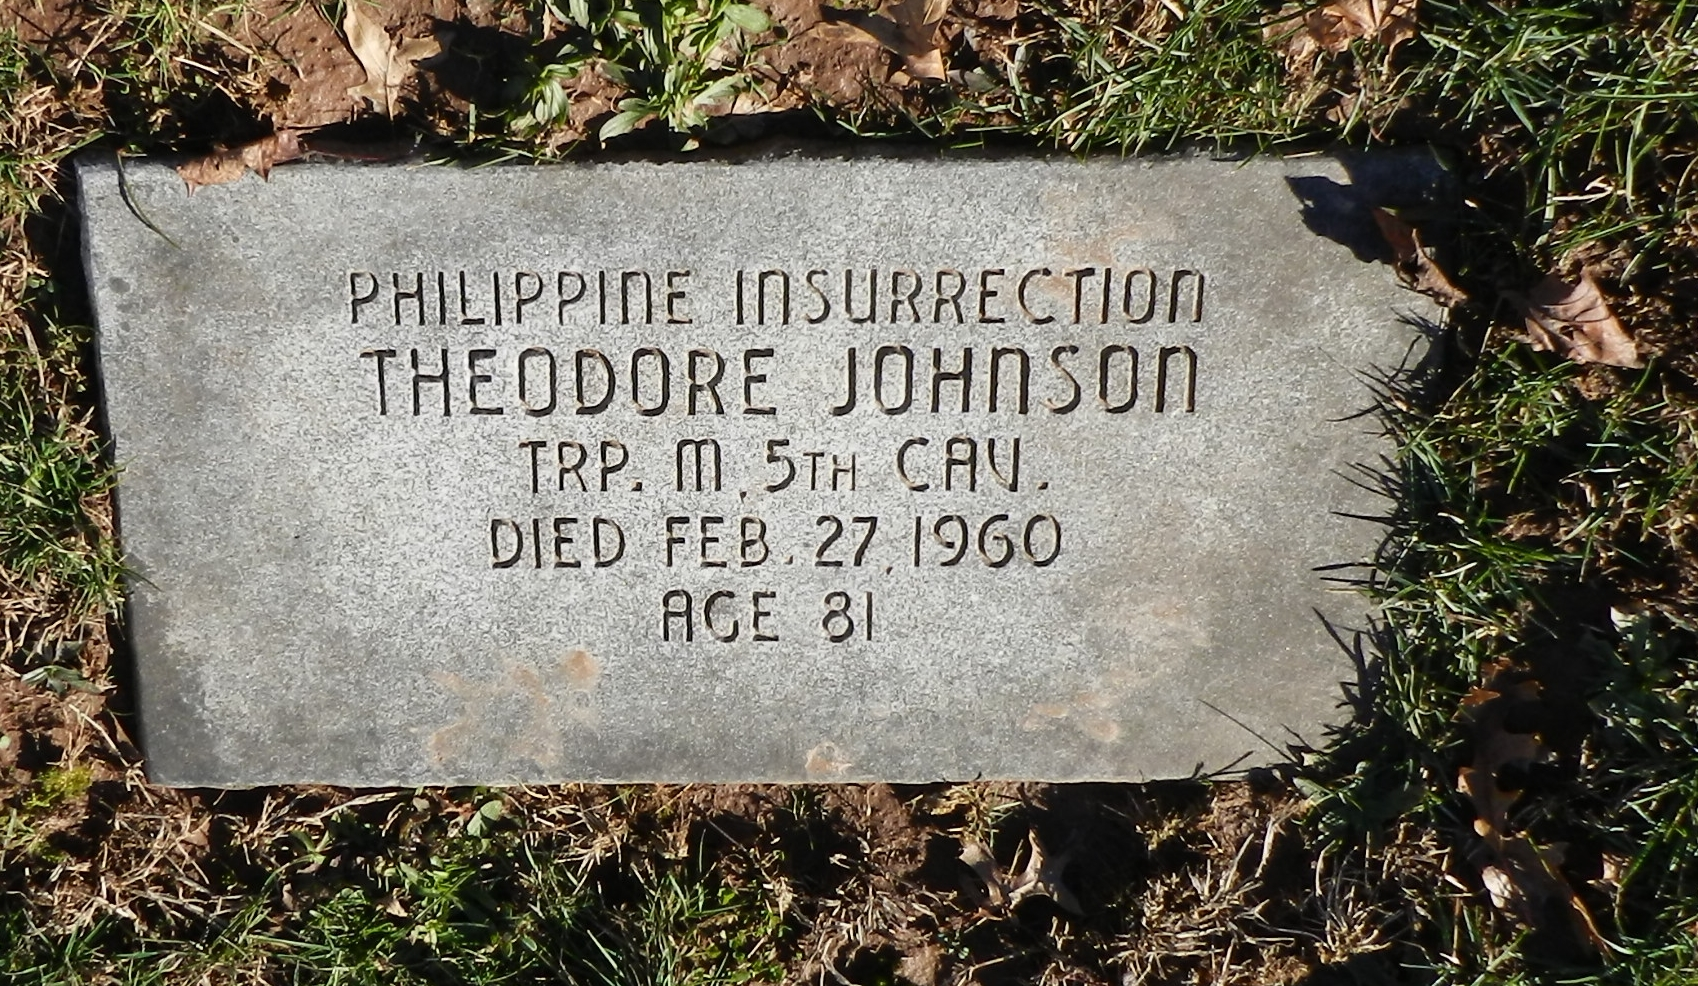 Theodore Johnson